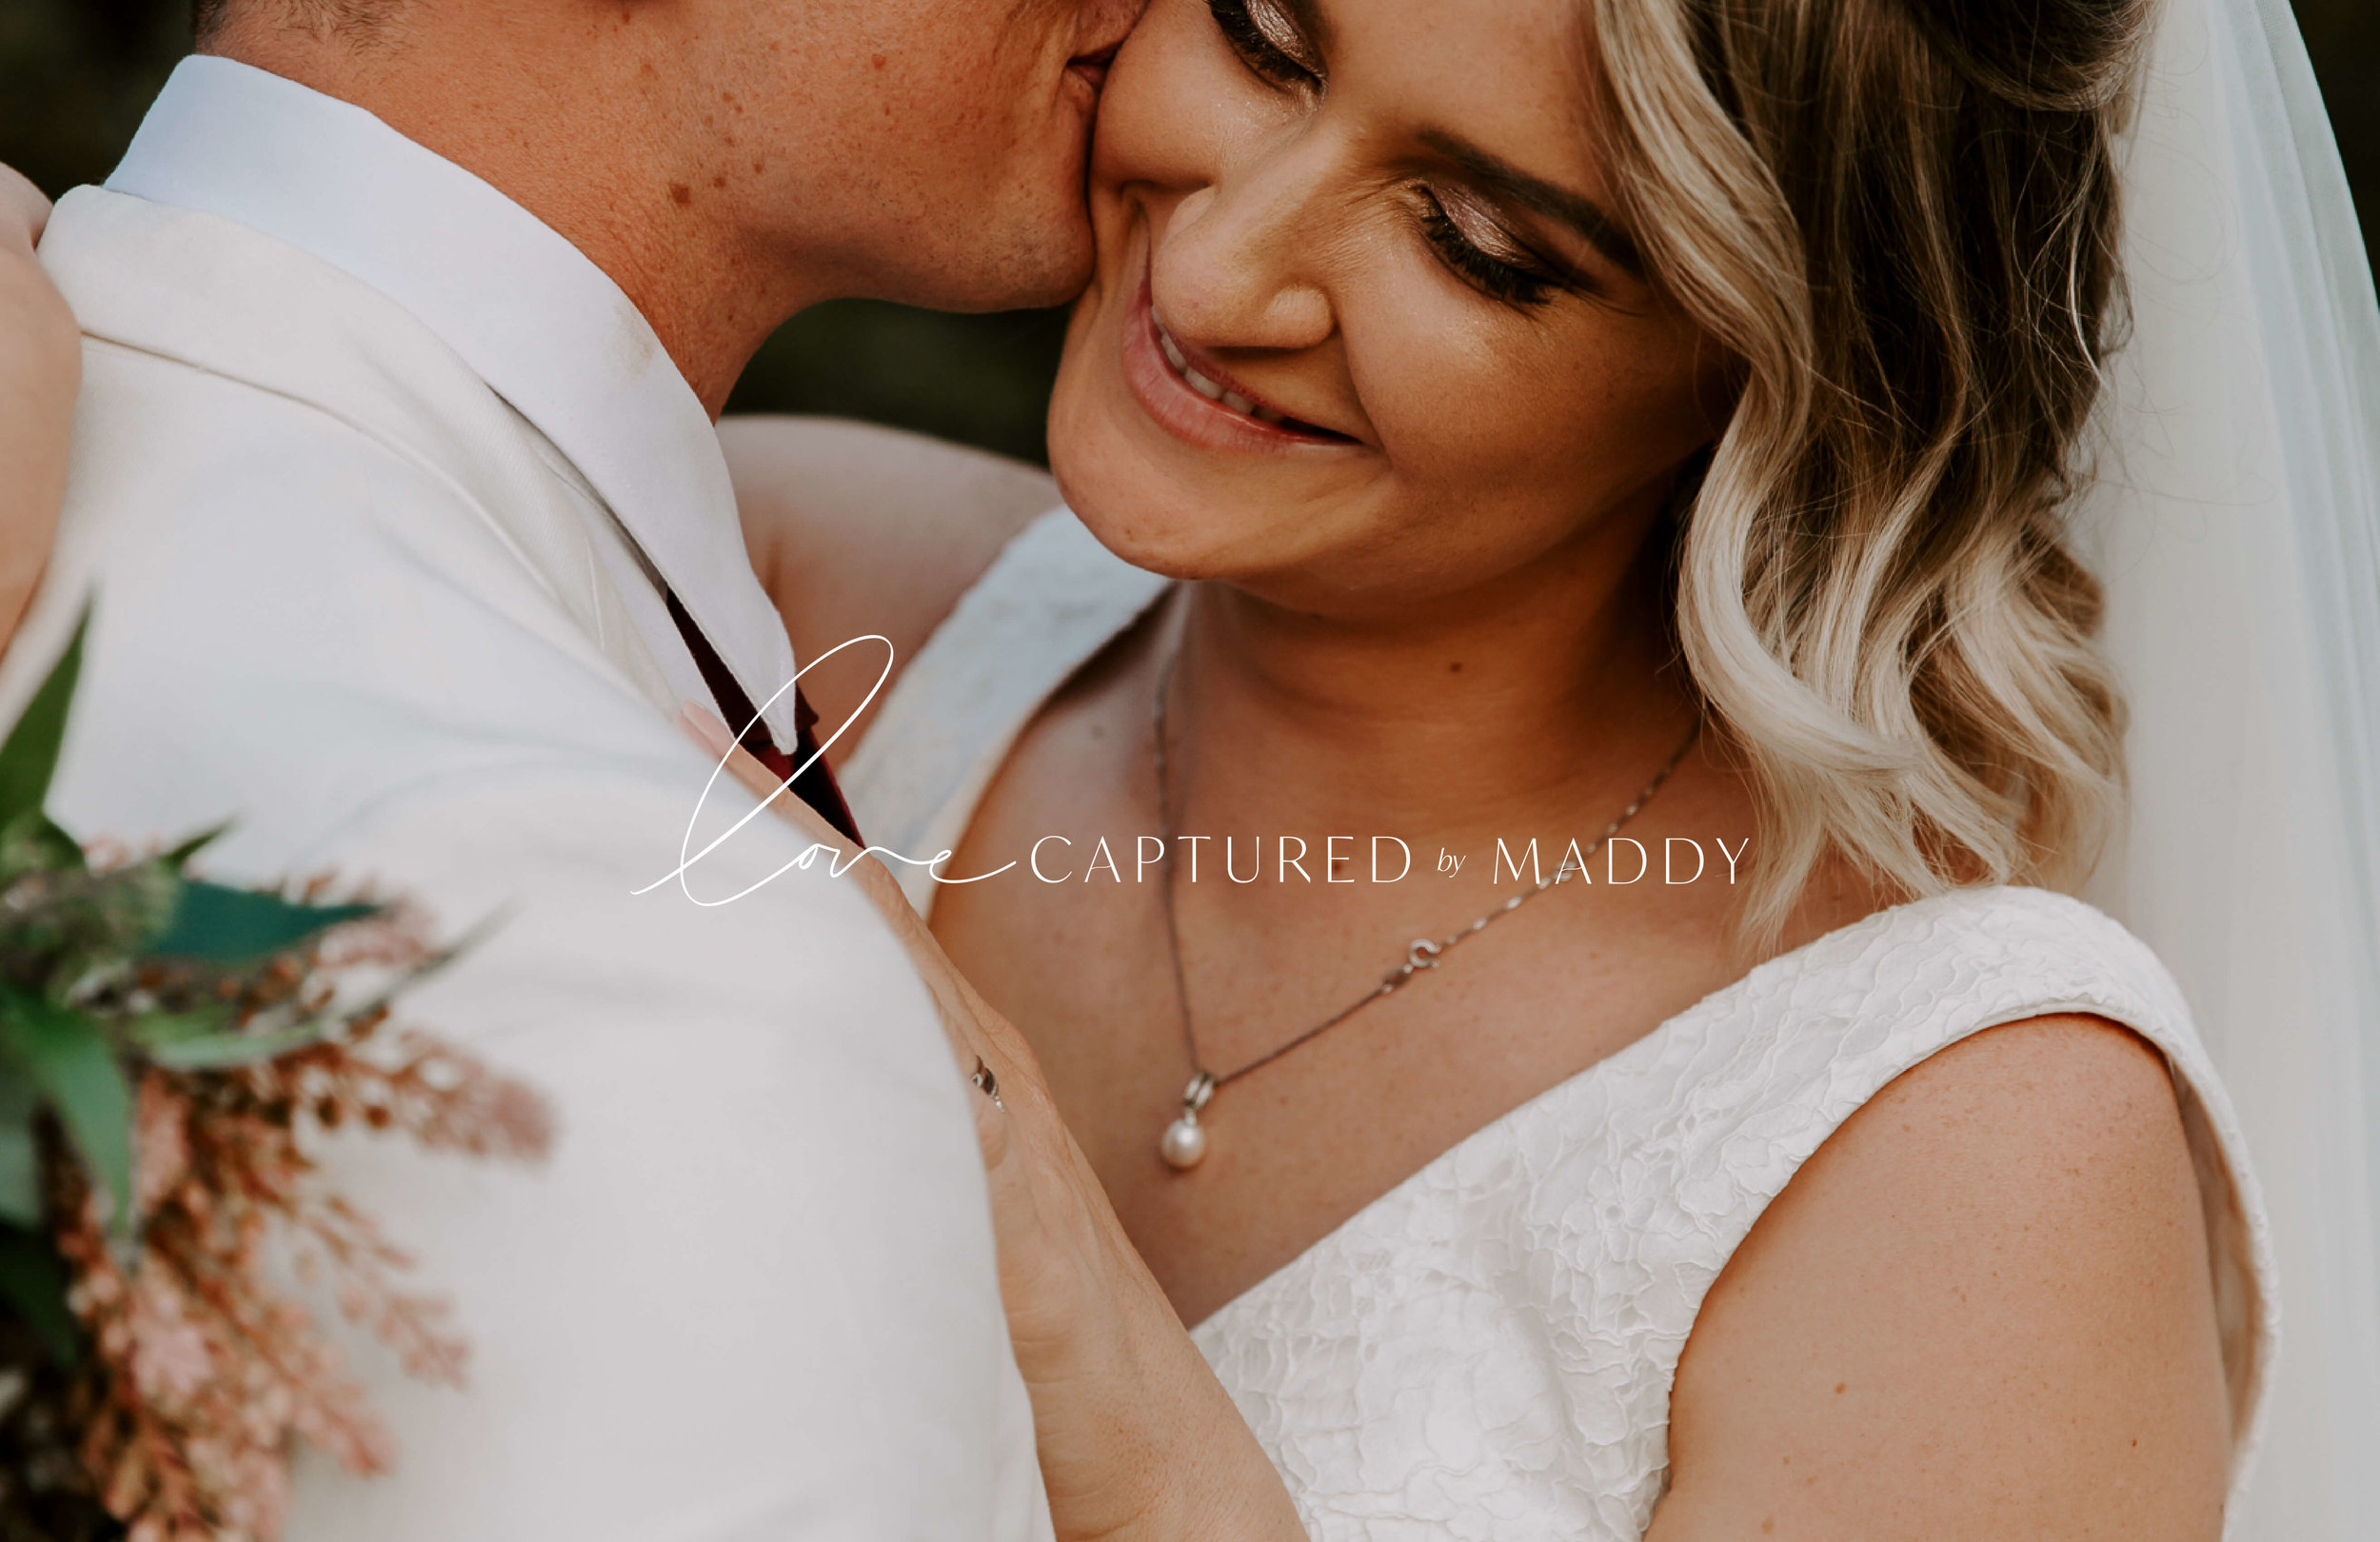 Love Captured by Maddy logo over image - by January Made Design